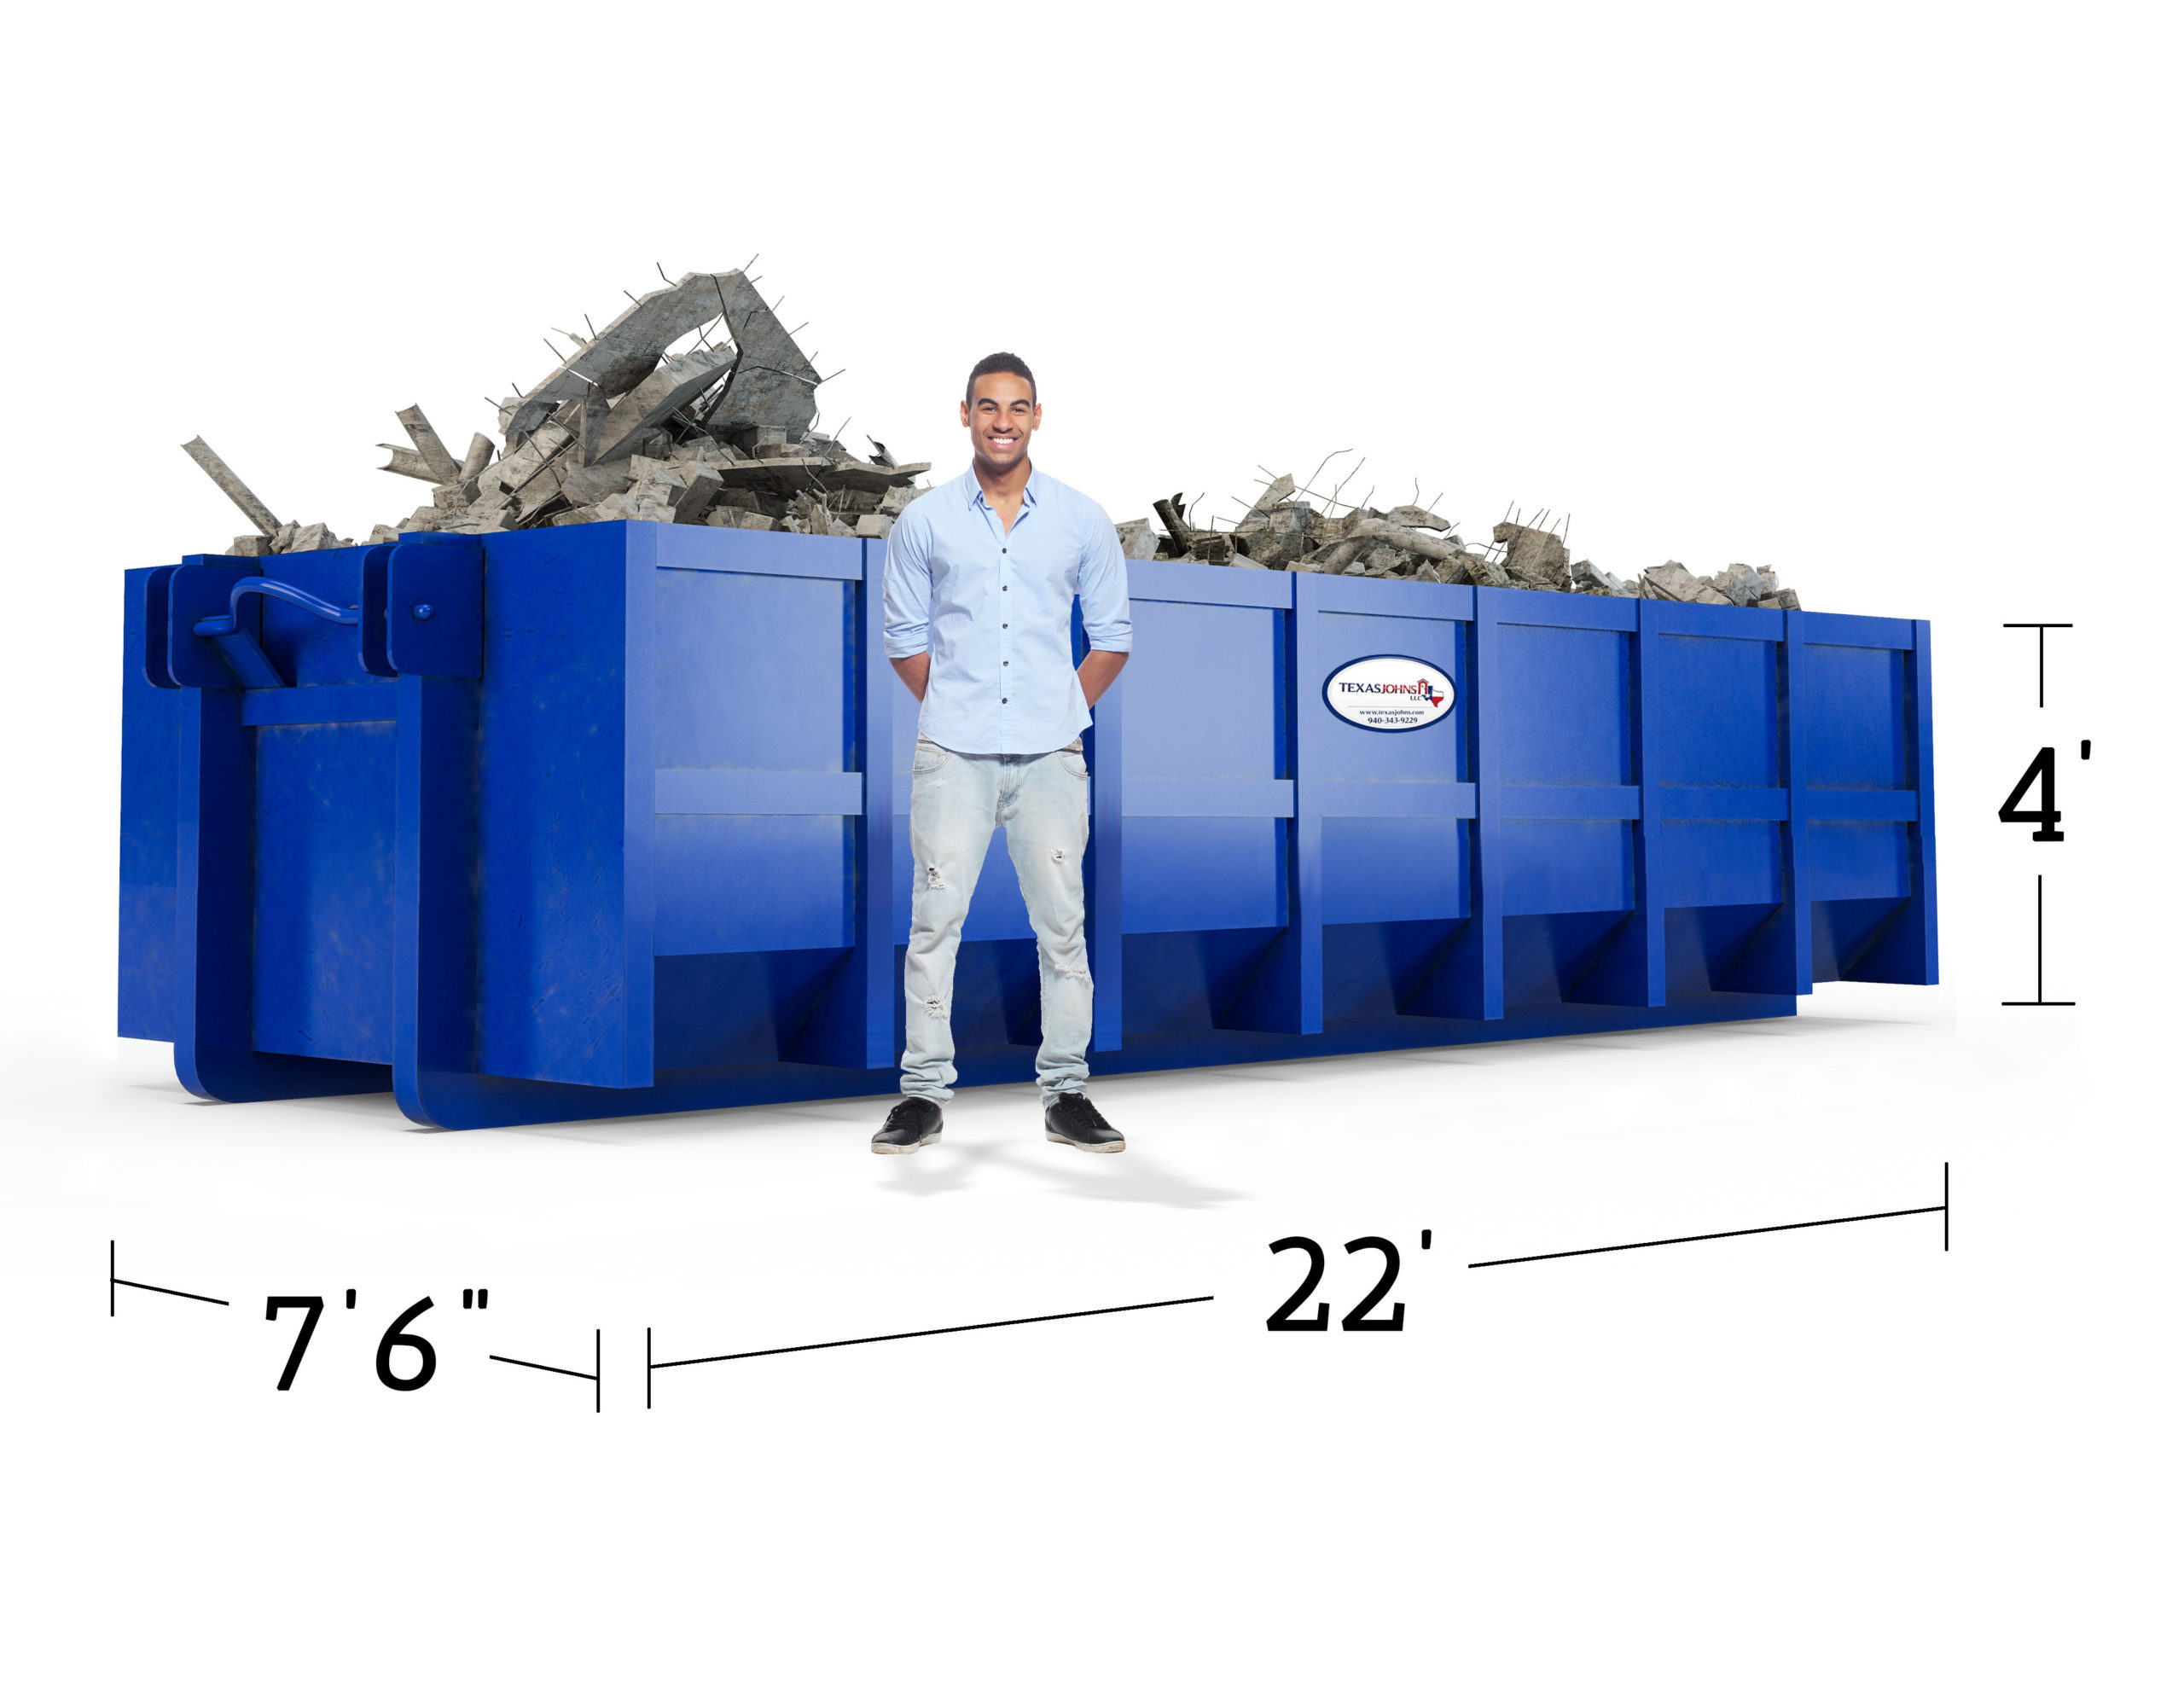 image of 7.5 x 22image of 7.5 x 22 x 4 dumpster x 6 dumpster